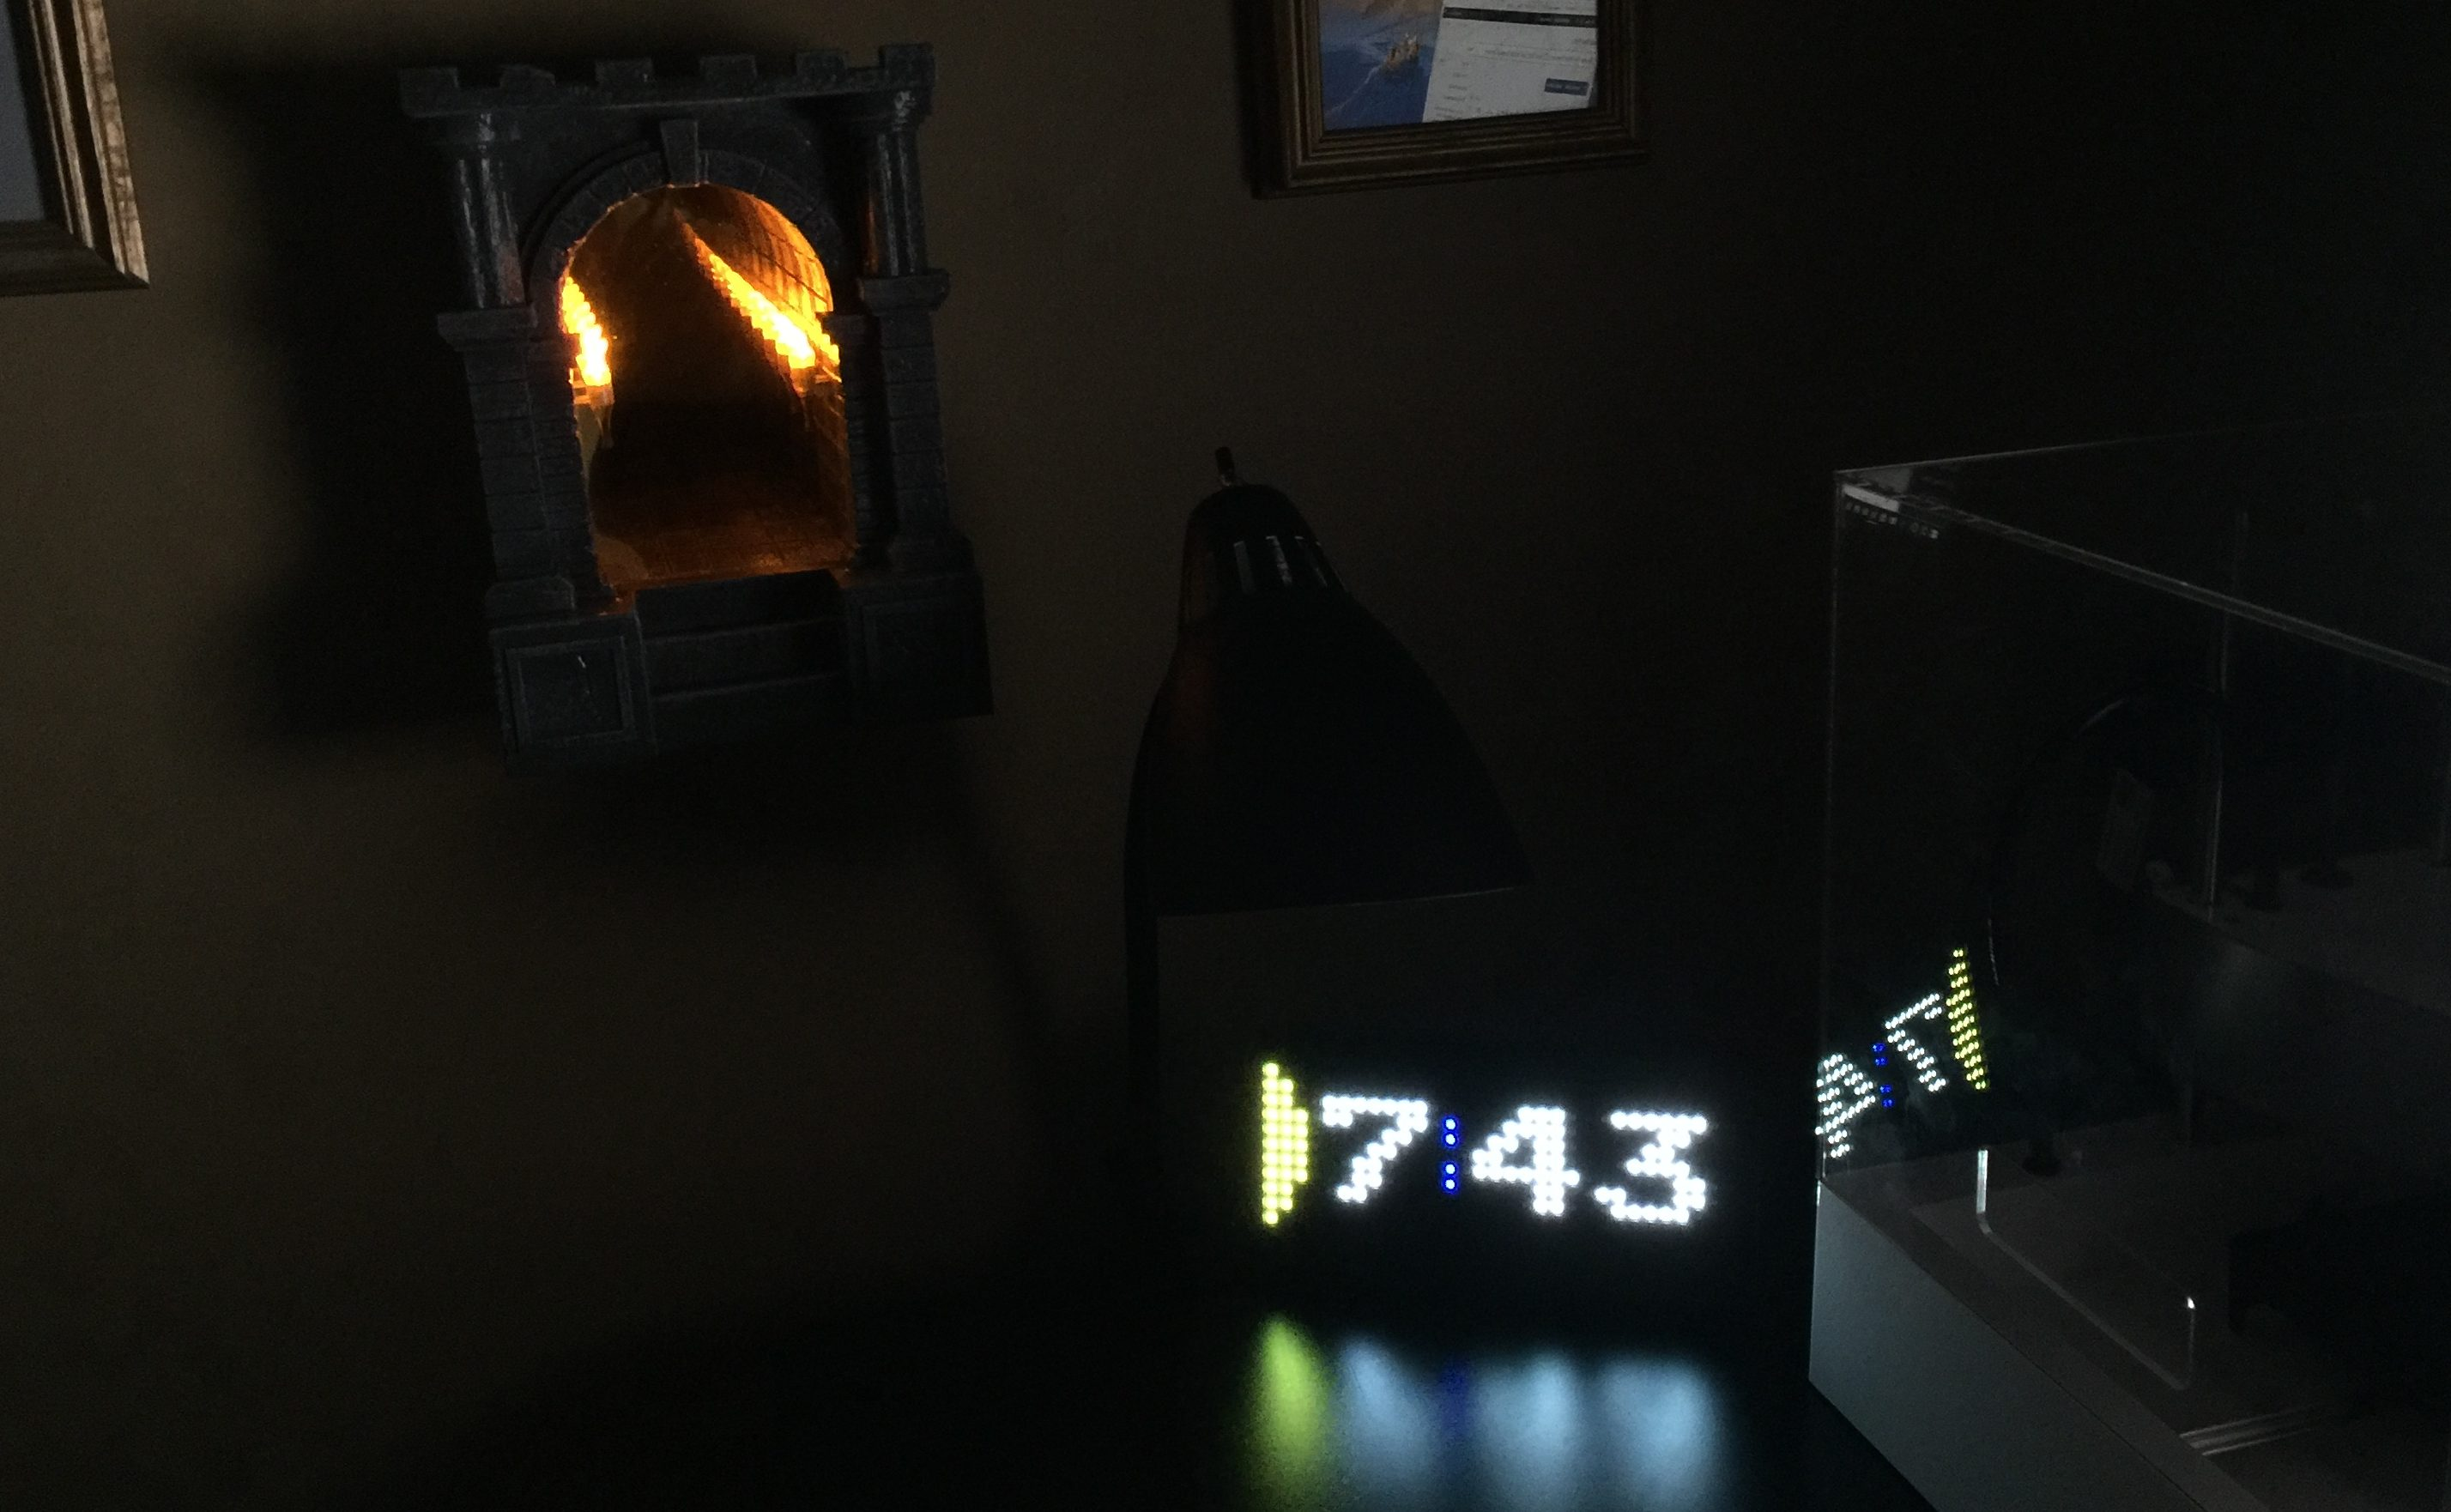 Review: Pac-Man Premium LED Desk Clock and Infinite Dungeon Corridor